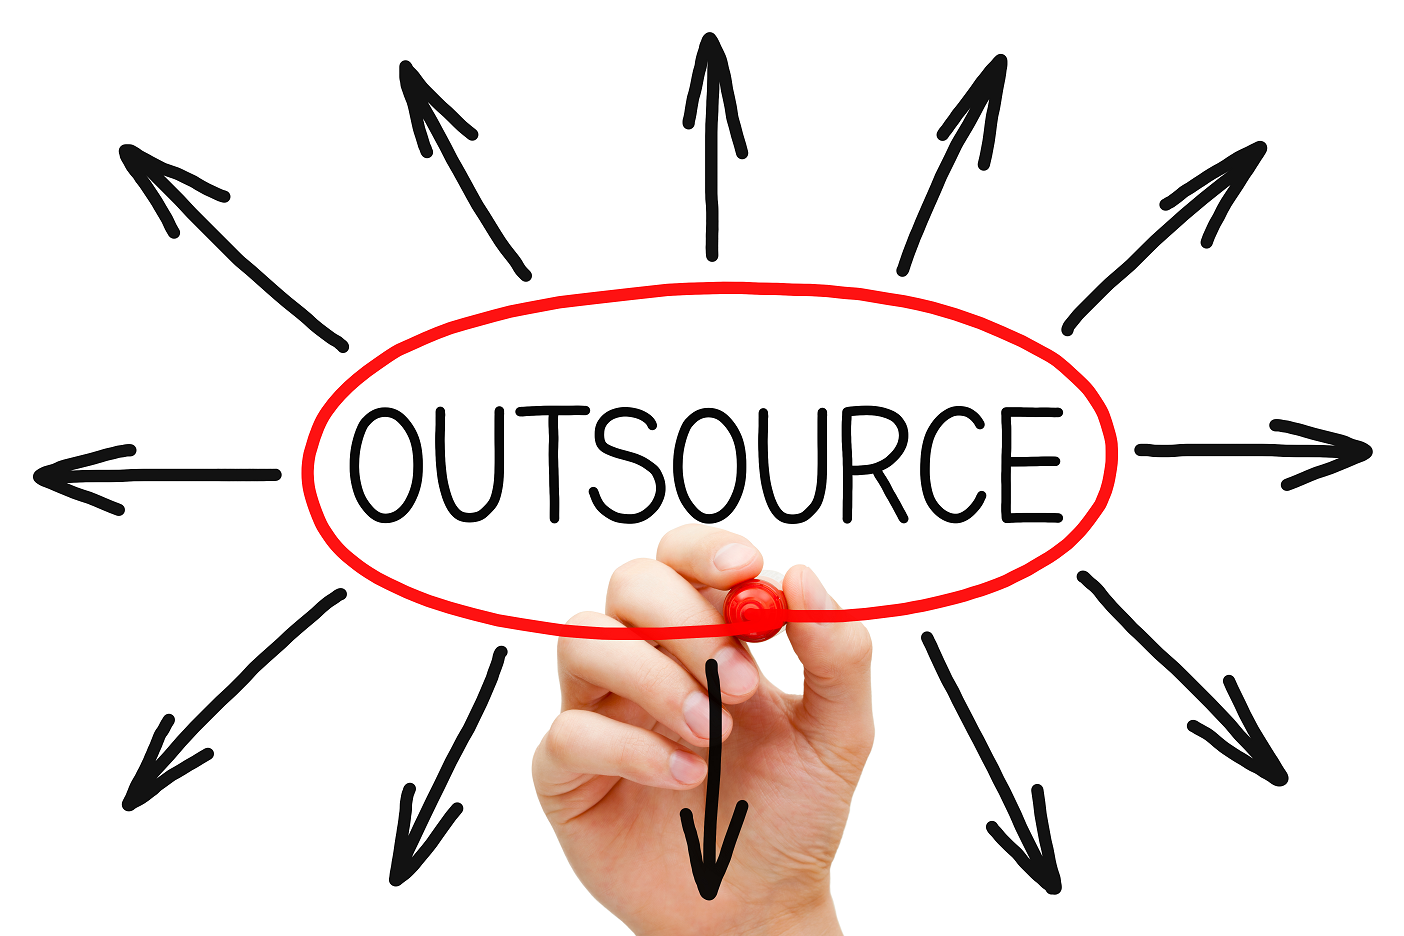 Call Center Outsourcing Concepts